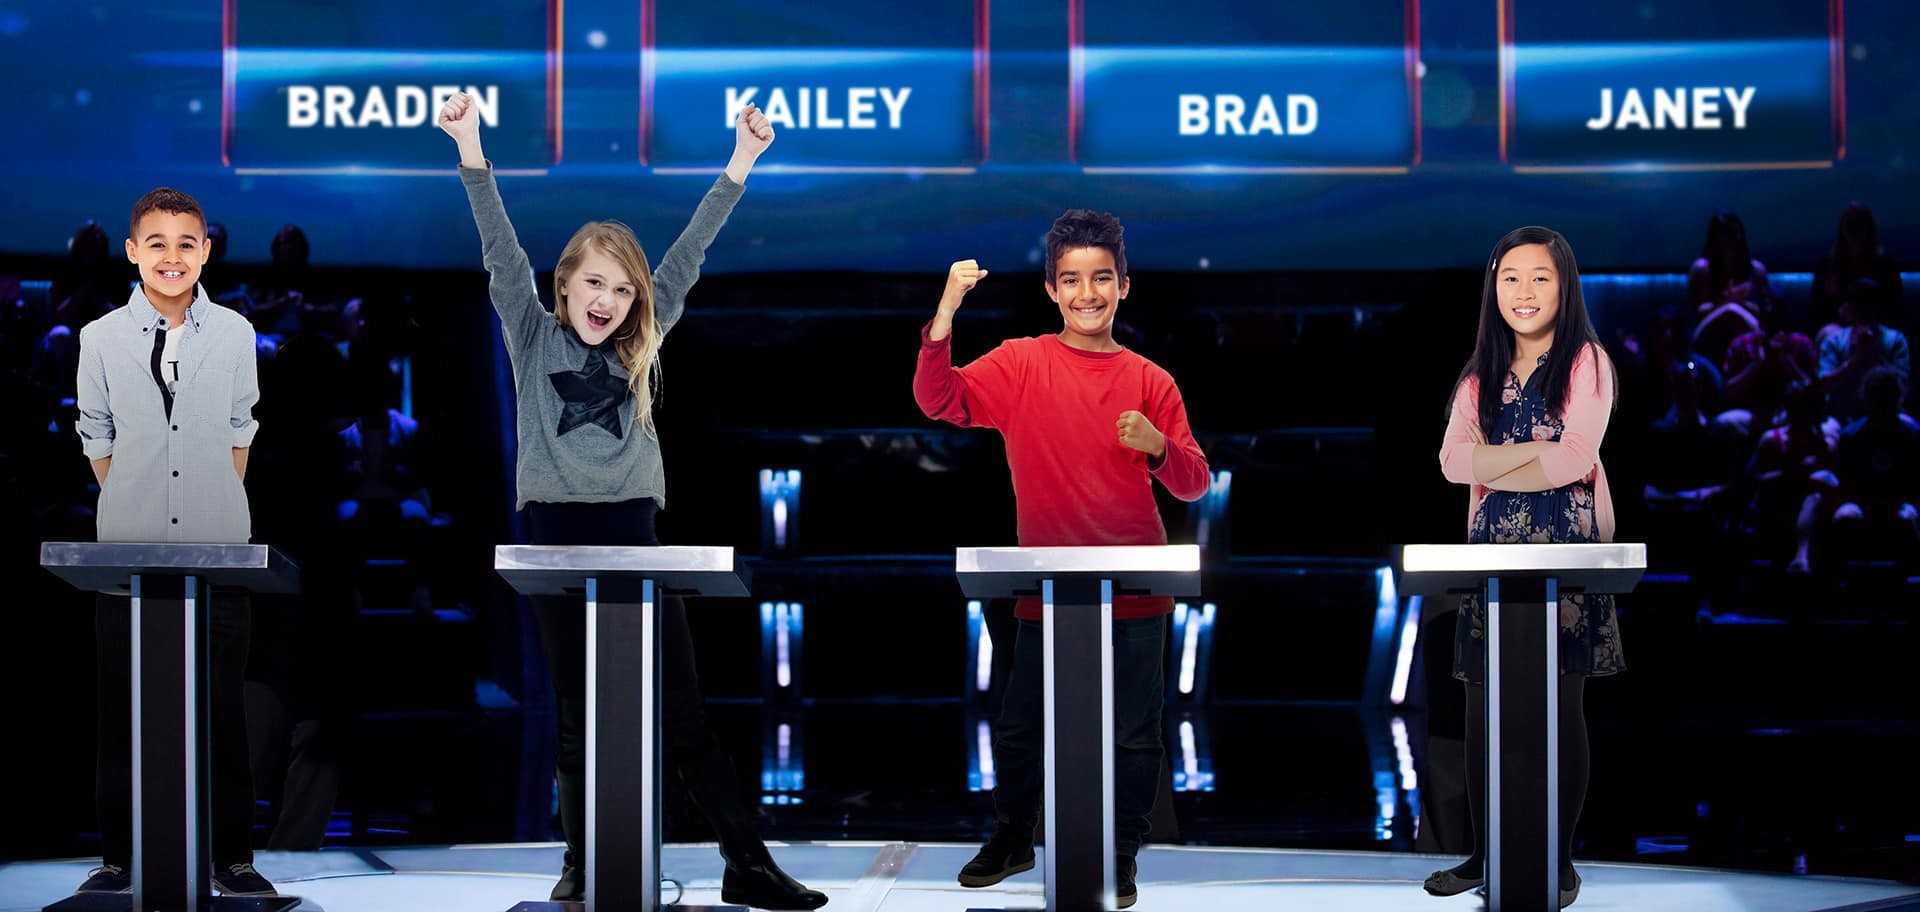 The Canada's Smartest Person Junior stage